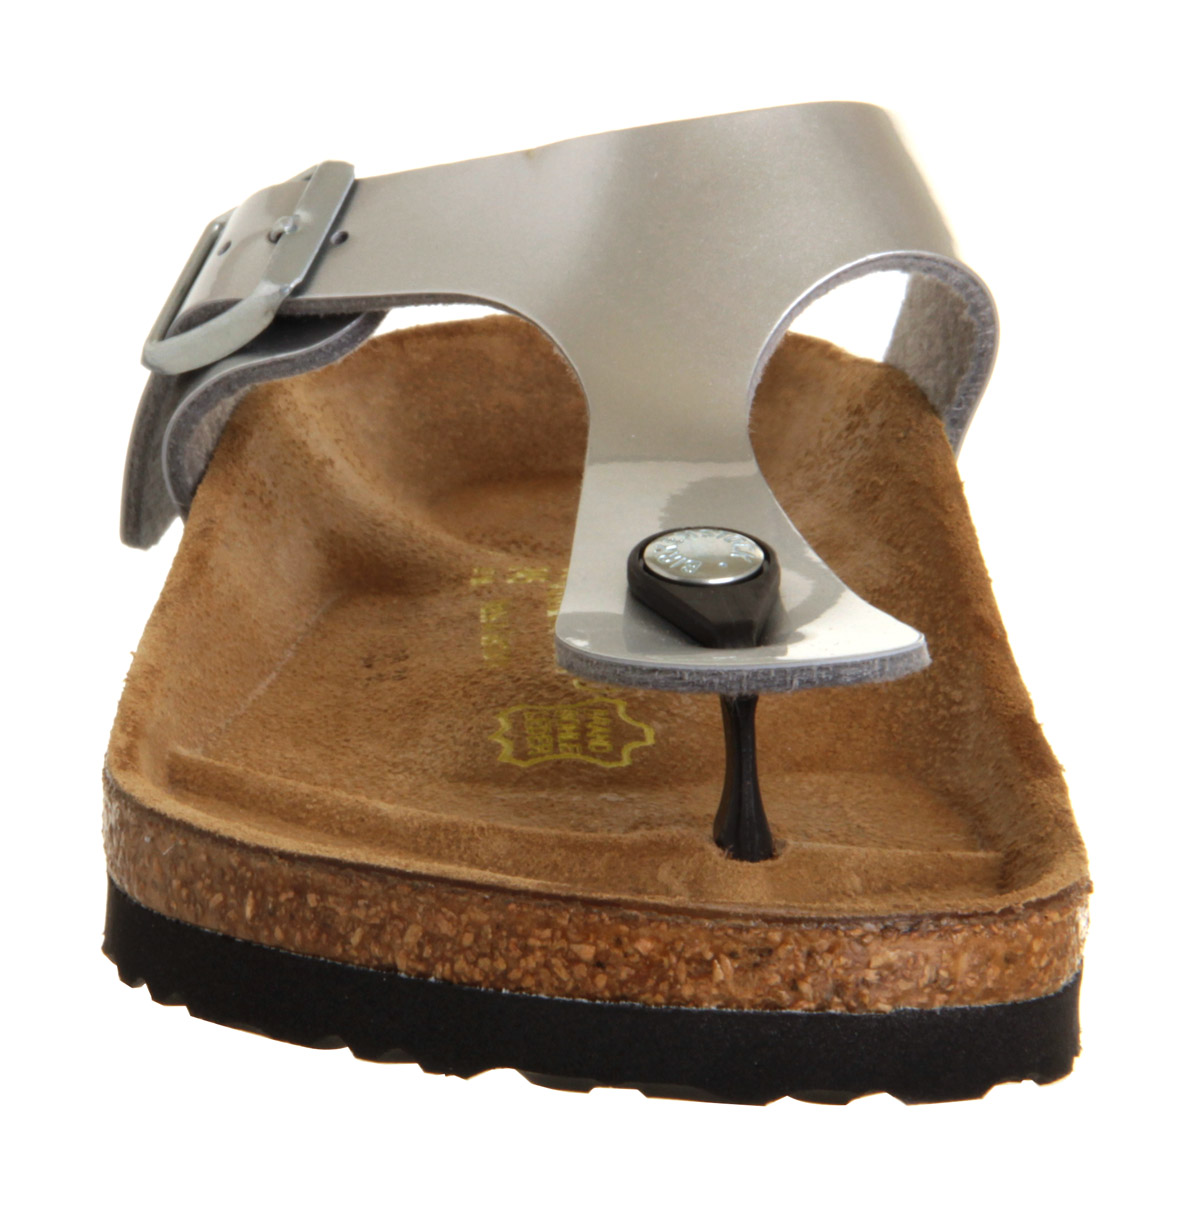 Birkenstock Toe Thong Footbed Steel Silver Birko Flor - Sandals